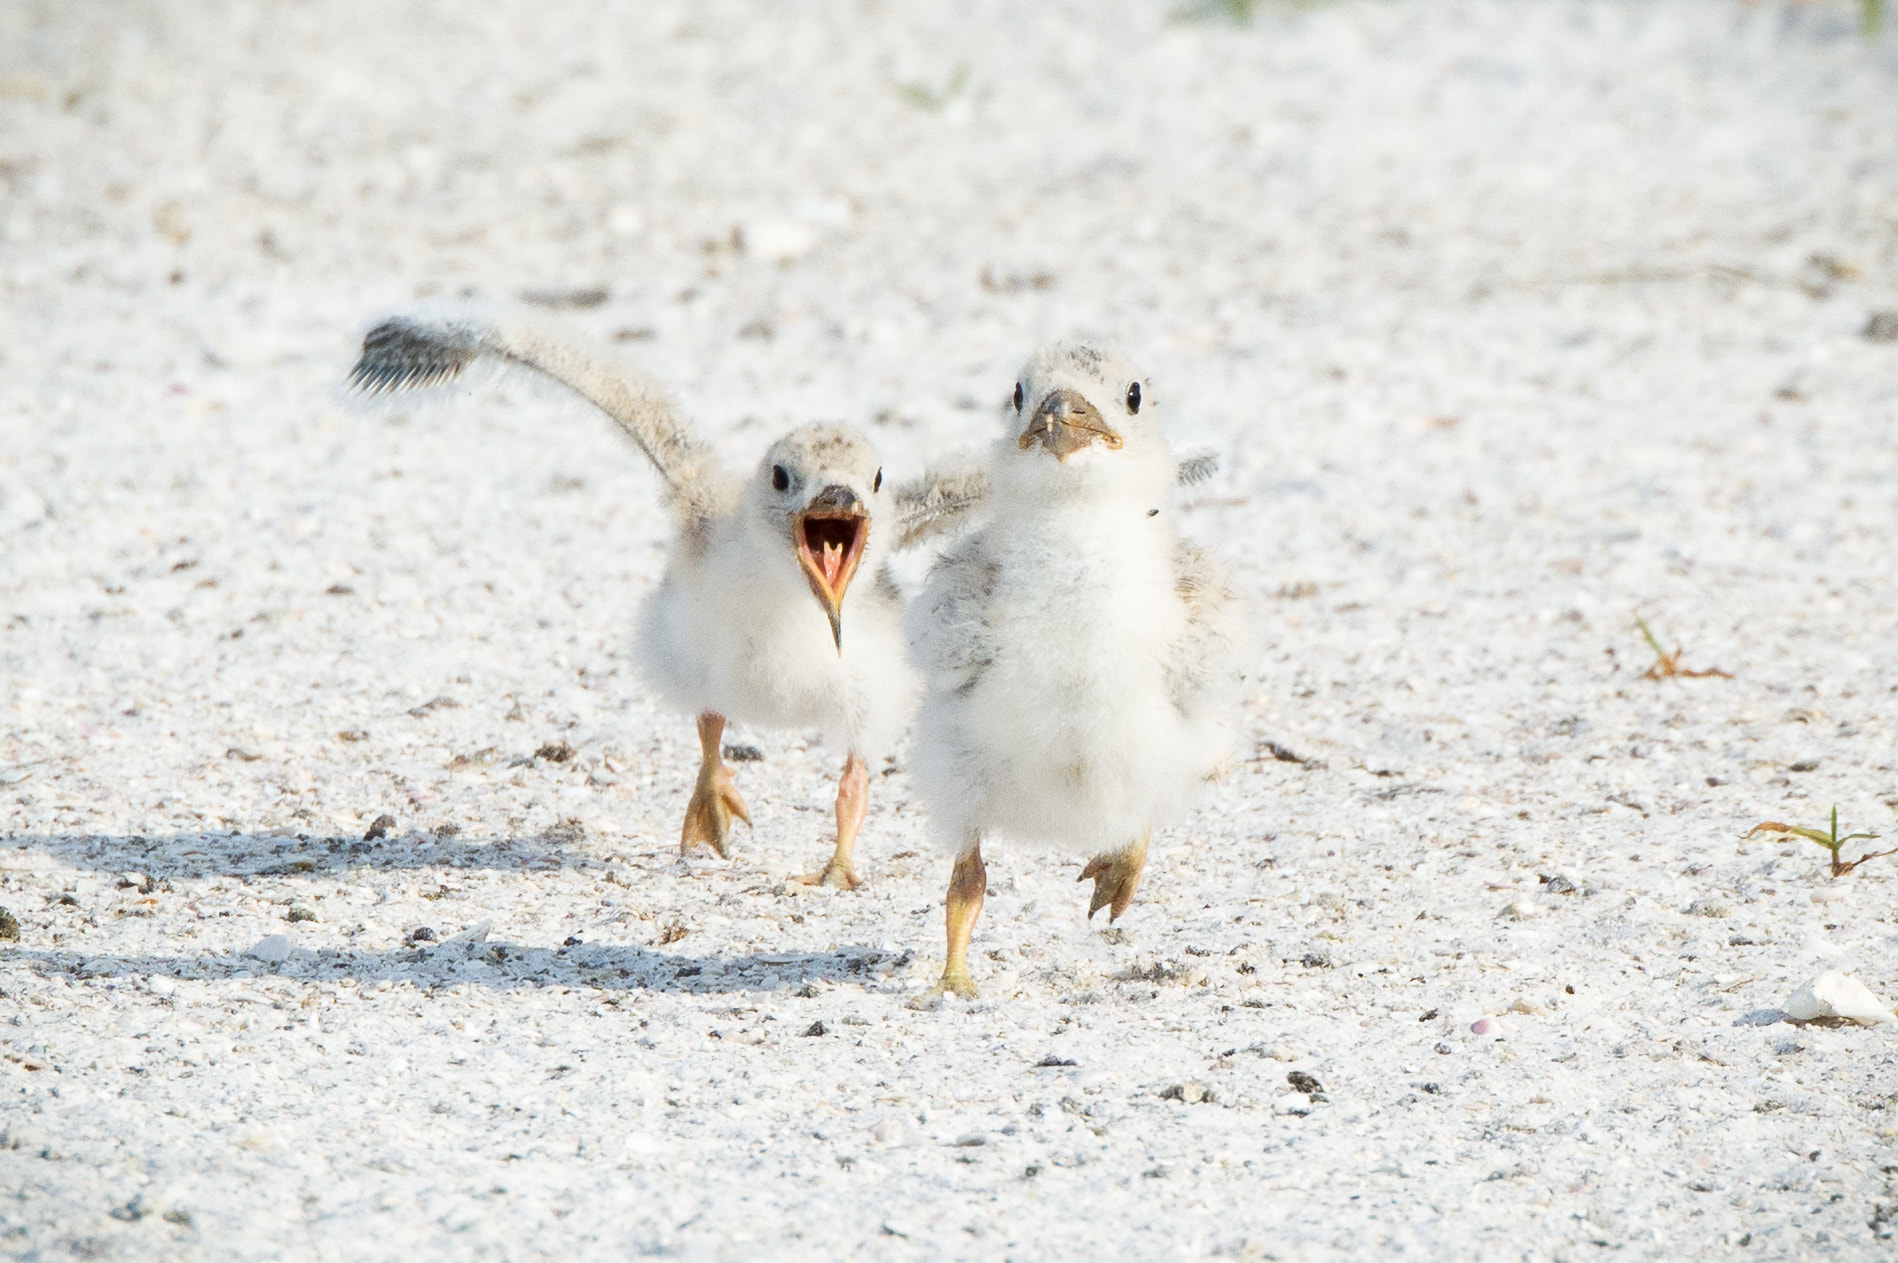 Royal tern chicks